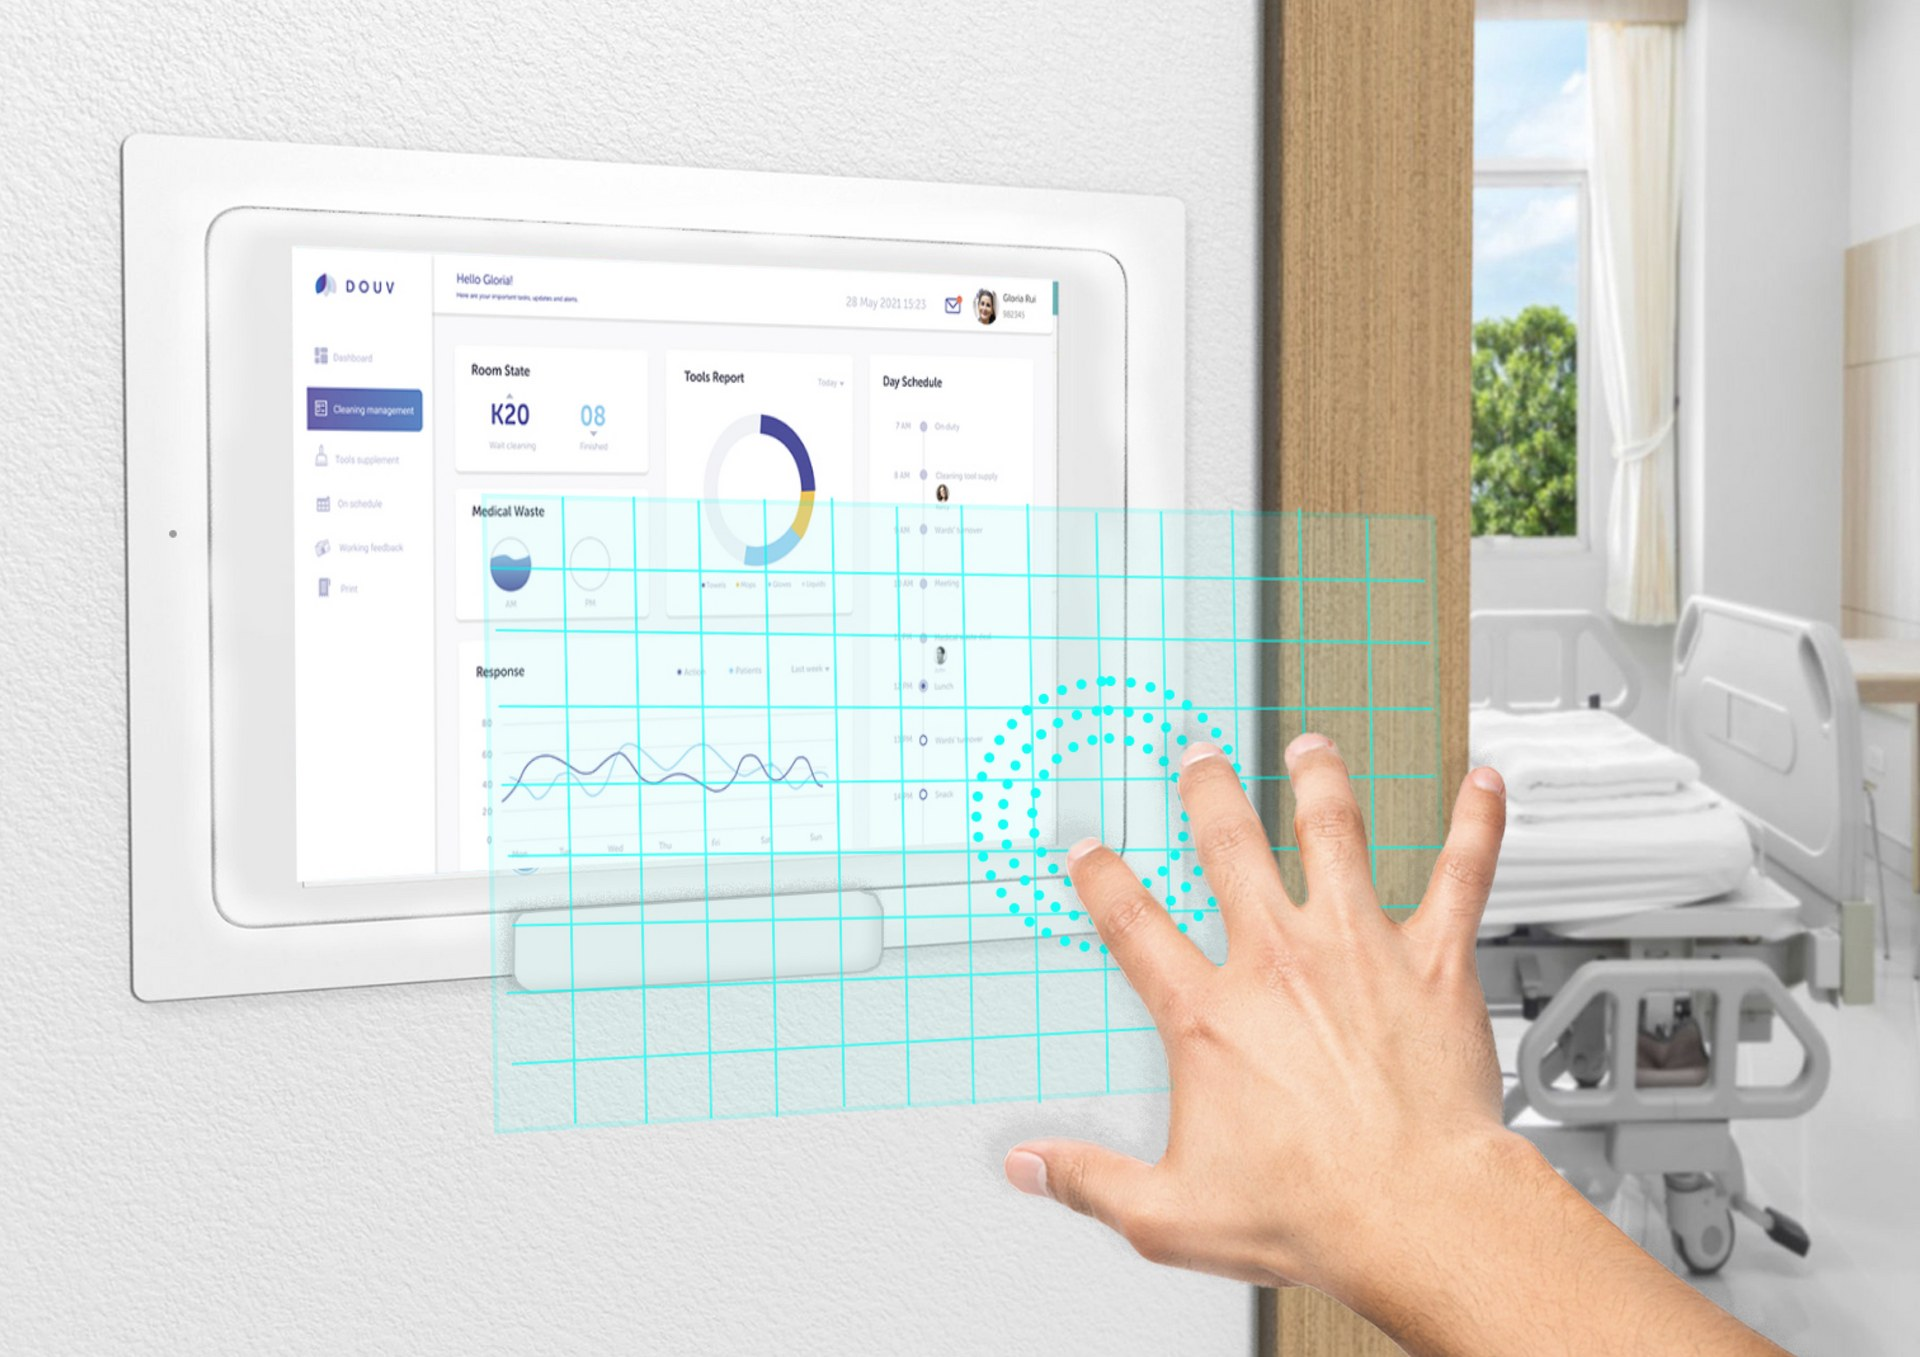 Touchless interaction